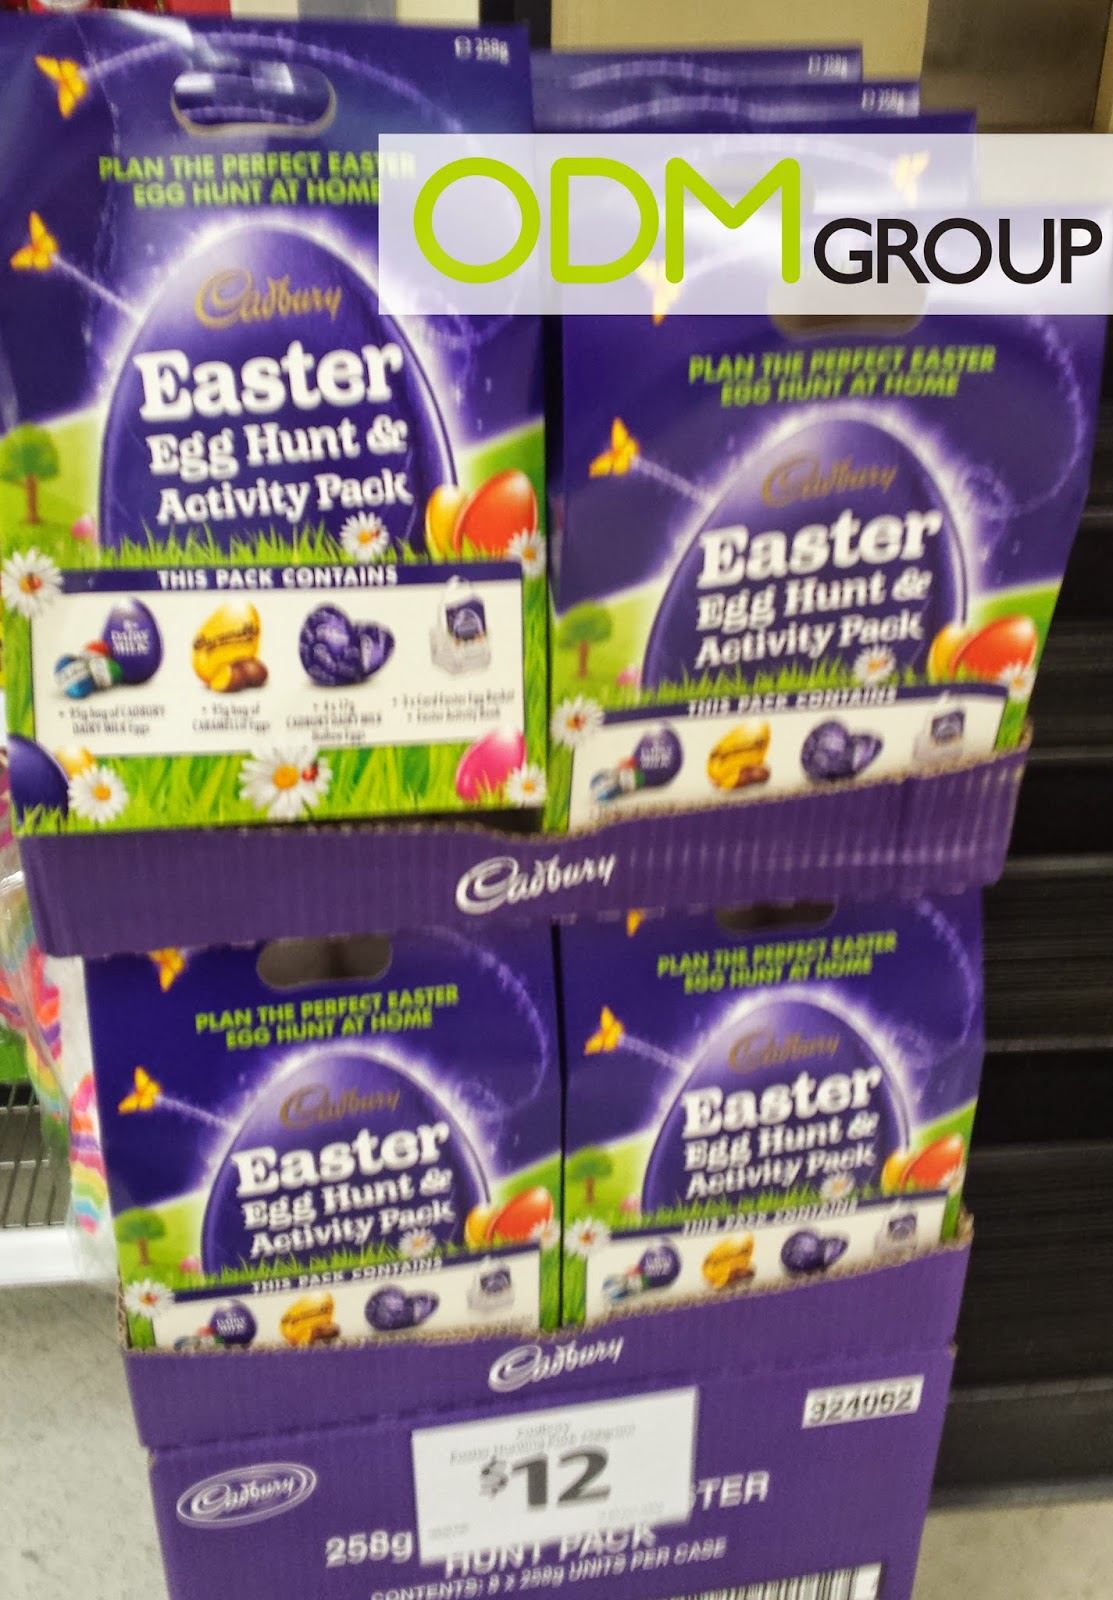 Cadbury Easter Egg Hunt & Activity Pack